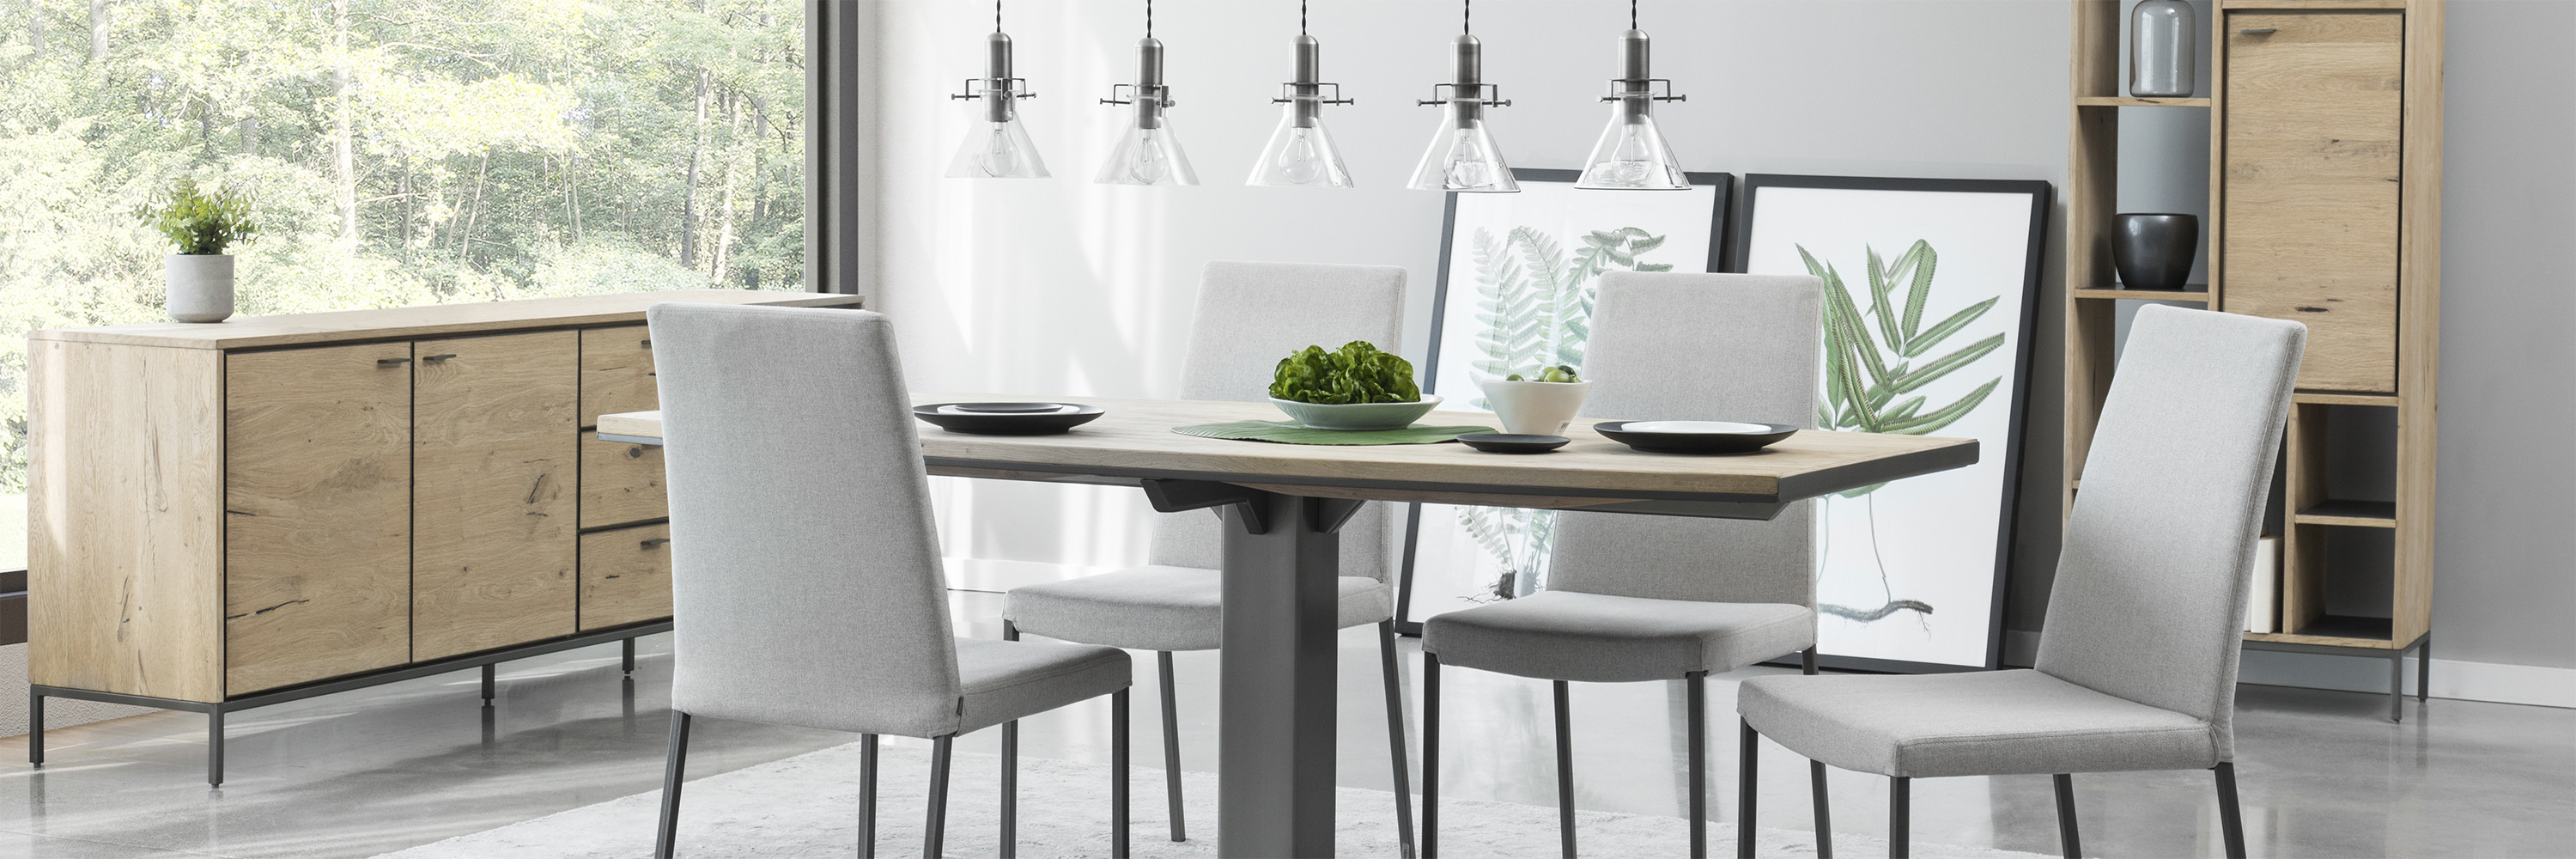 Table D Appoint Cuisine dining room | contemporary furniture | maison corbeil